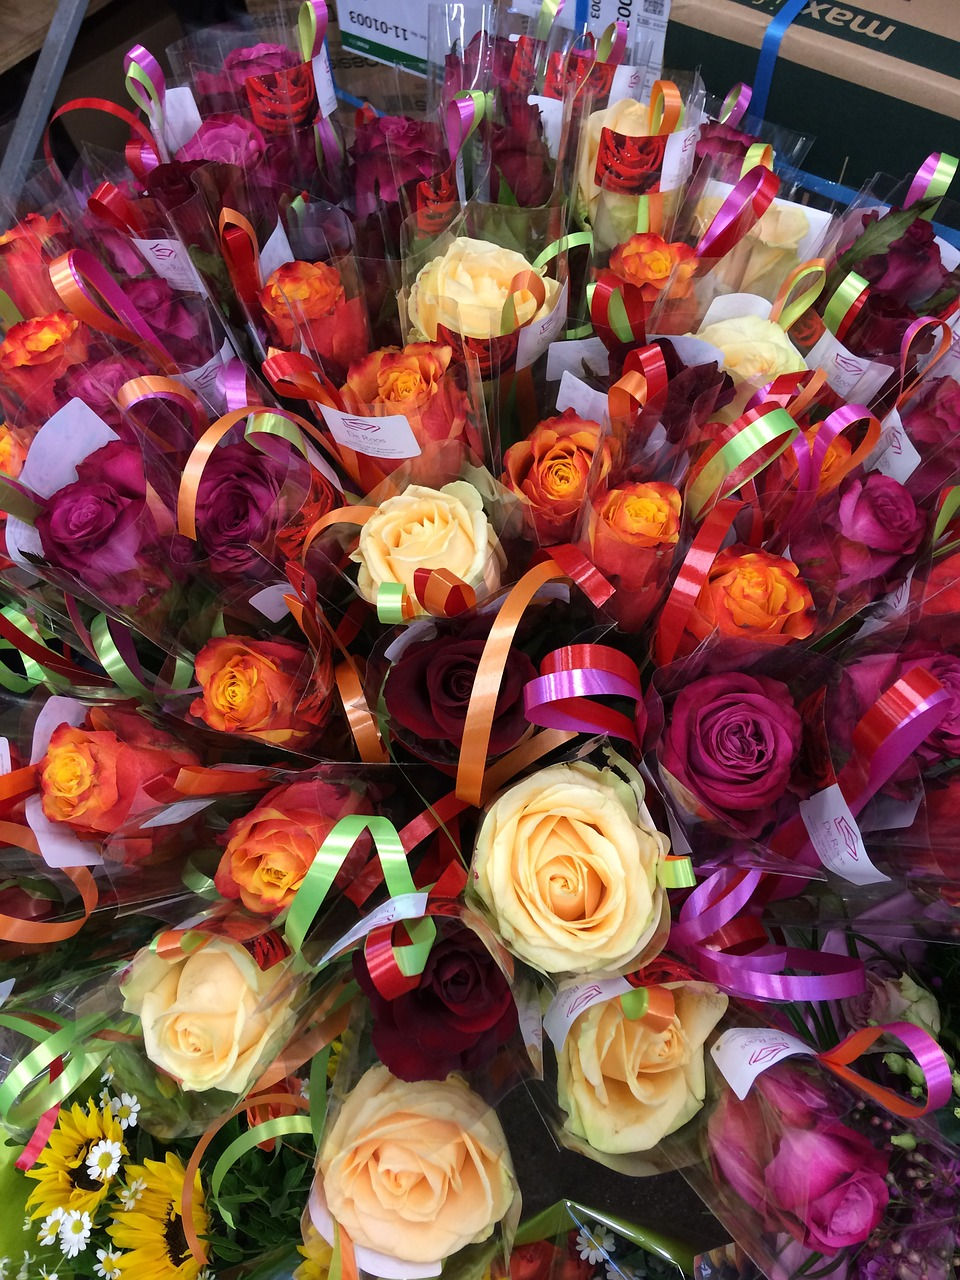 Flowers,roses,flower,bouquet,bunch of flowers - free photo from ...